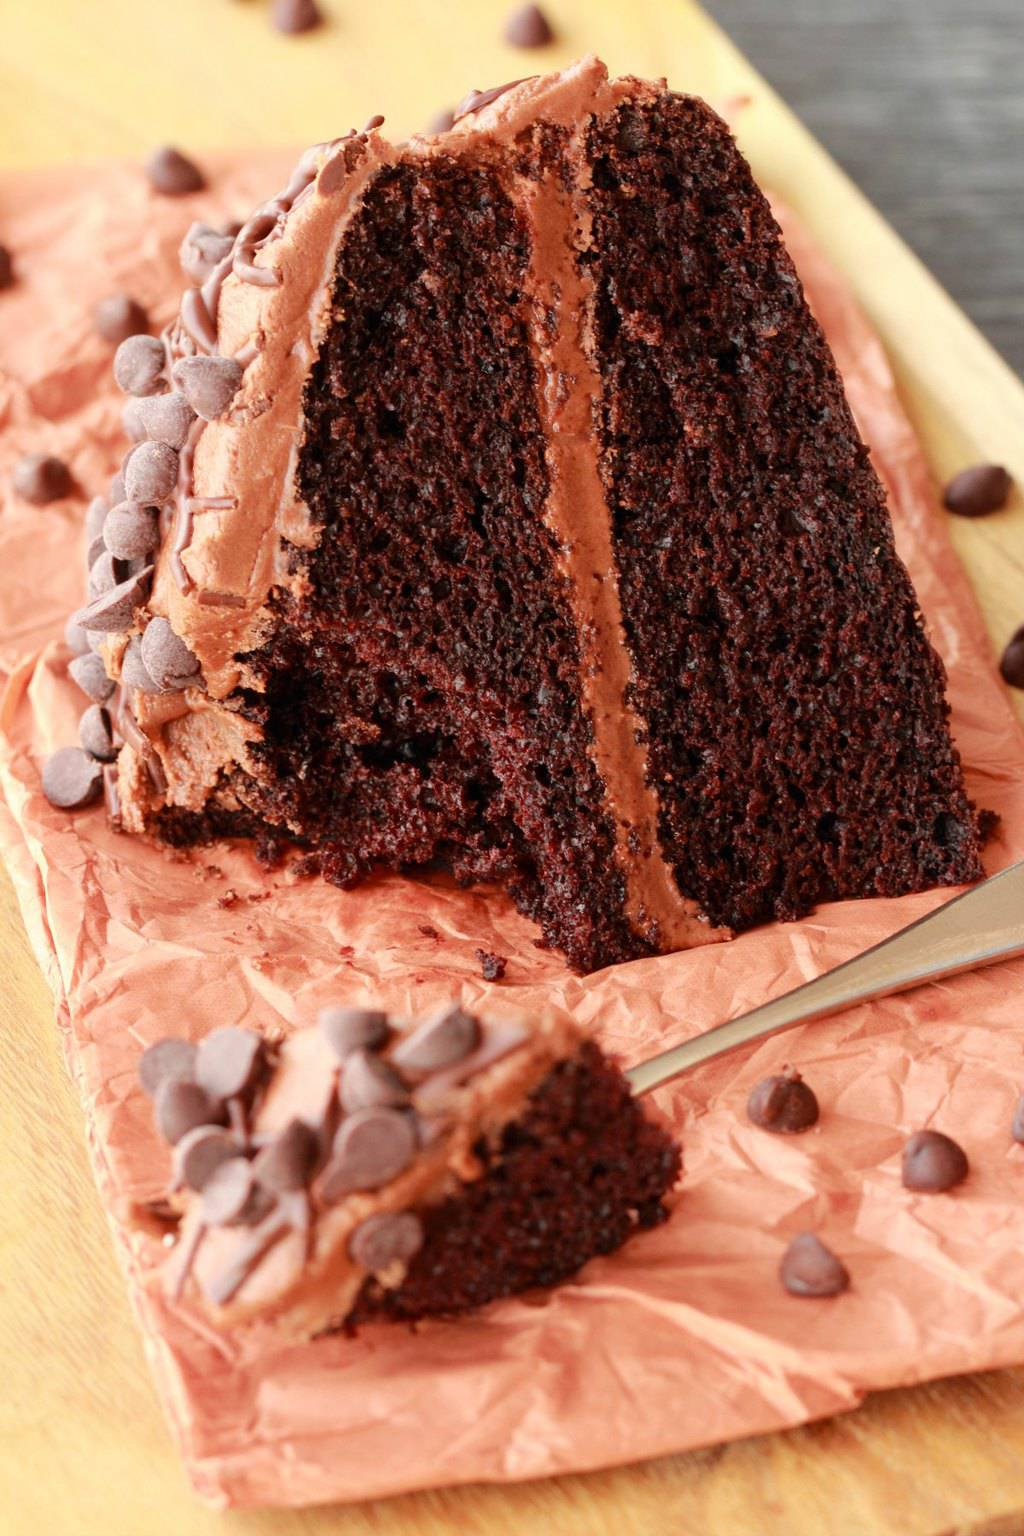 A slice of chocolate cake lying on some brown tissue paper, with a forkful of cake next to it.